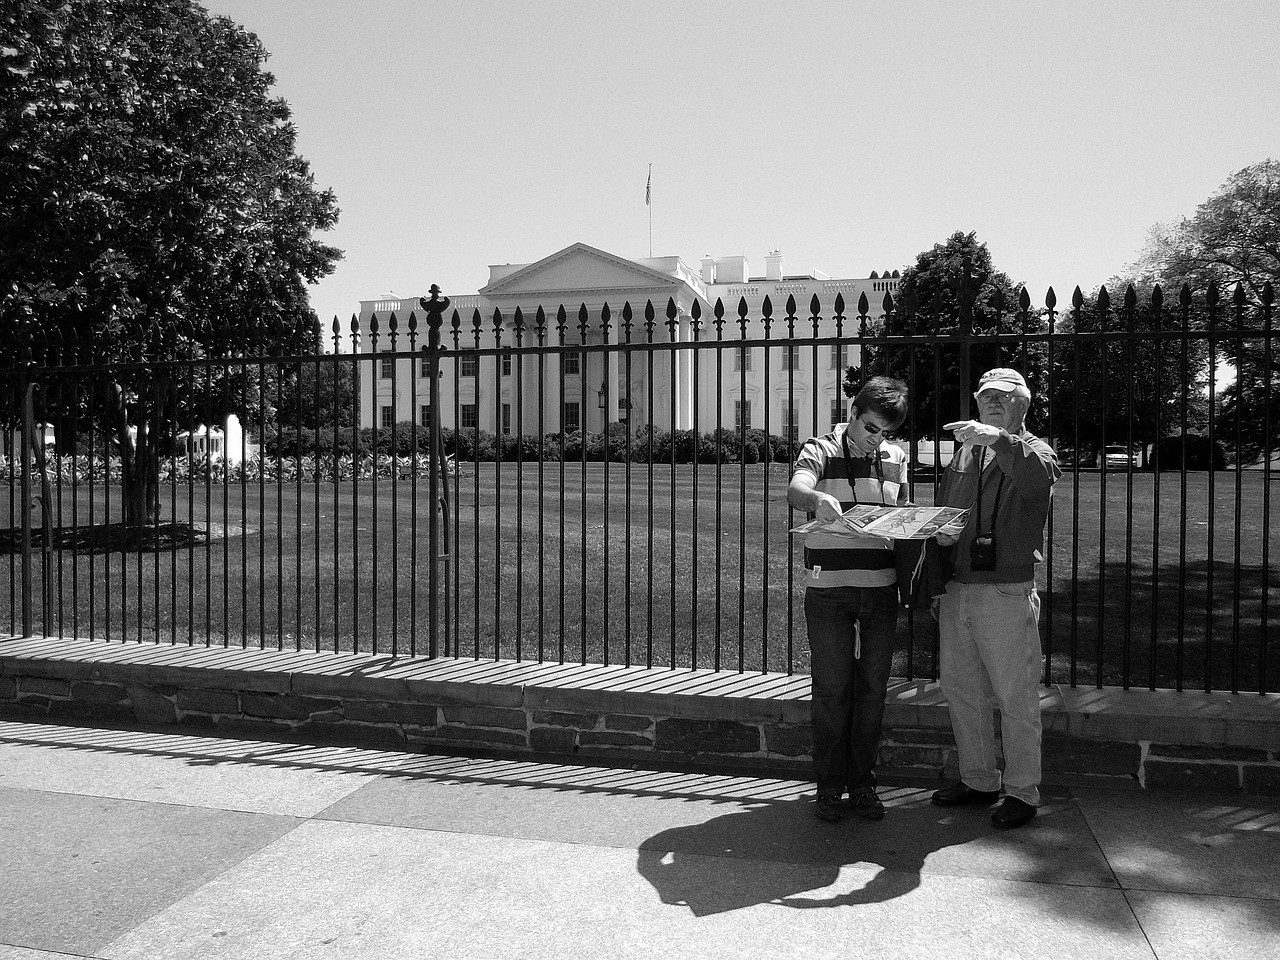 tourists in washington dc travel guide